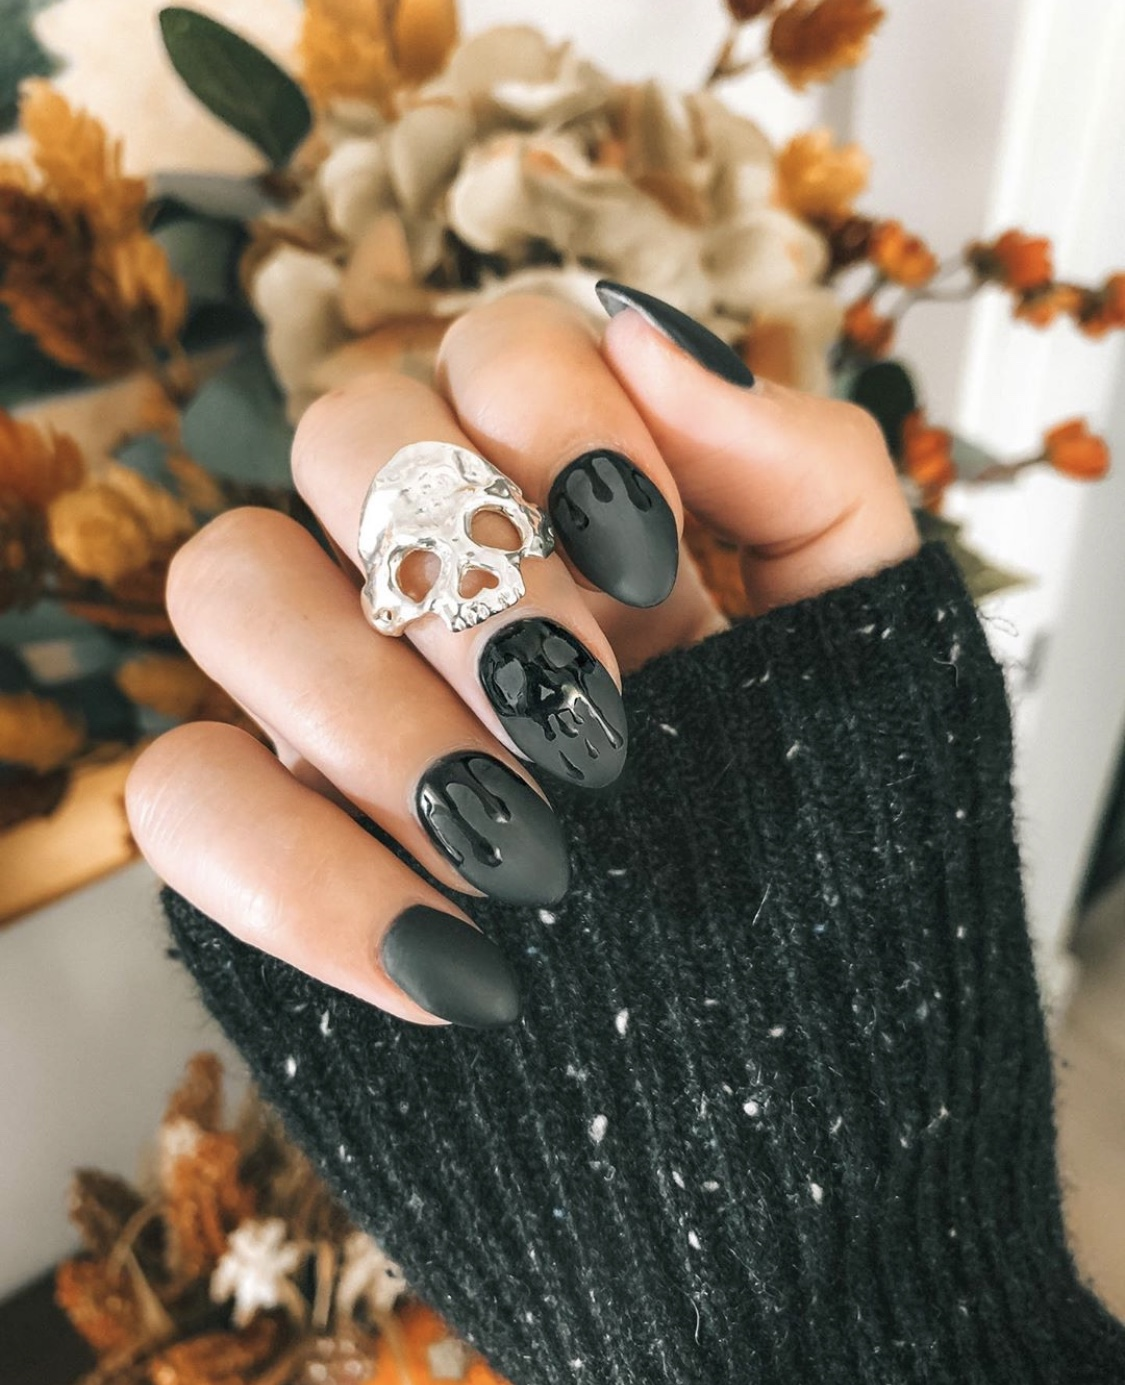 Nail Art Designs by popular Austin beauty blog, Dressed to Kill: image of a woman with Halloween nail art and wearing a Margaret Cross skull ring.